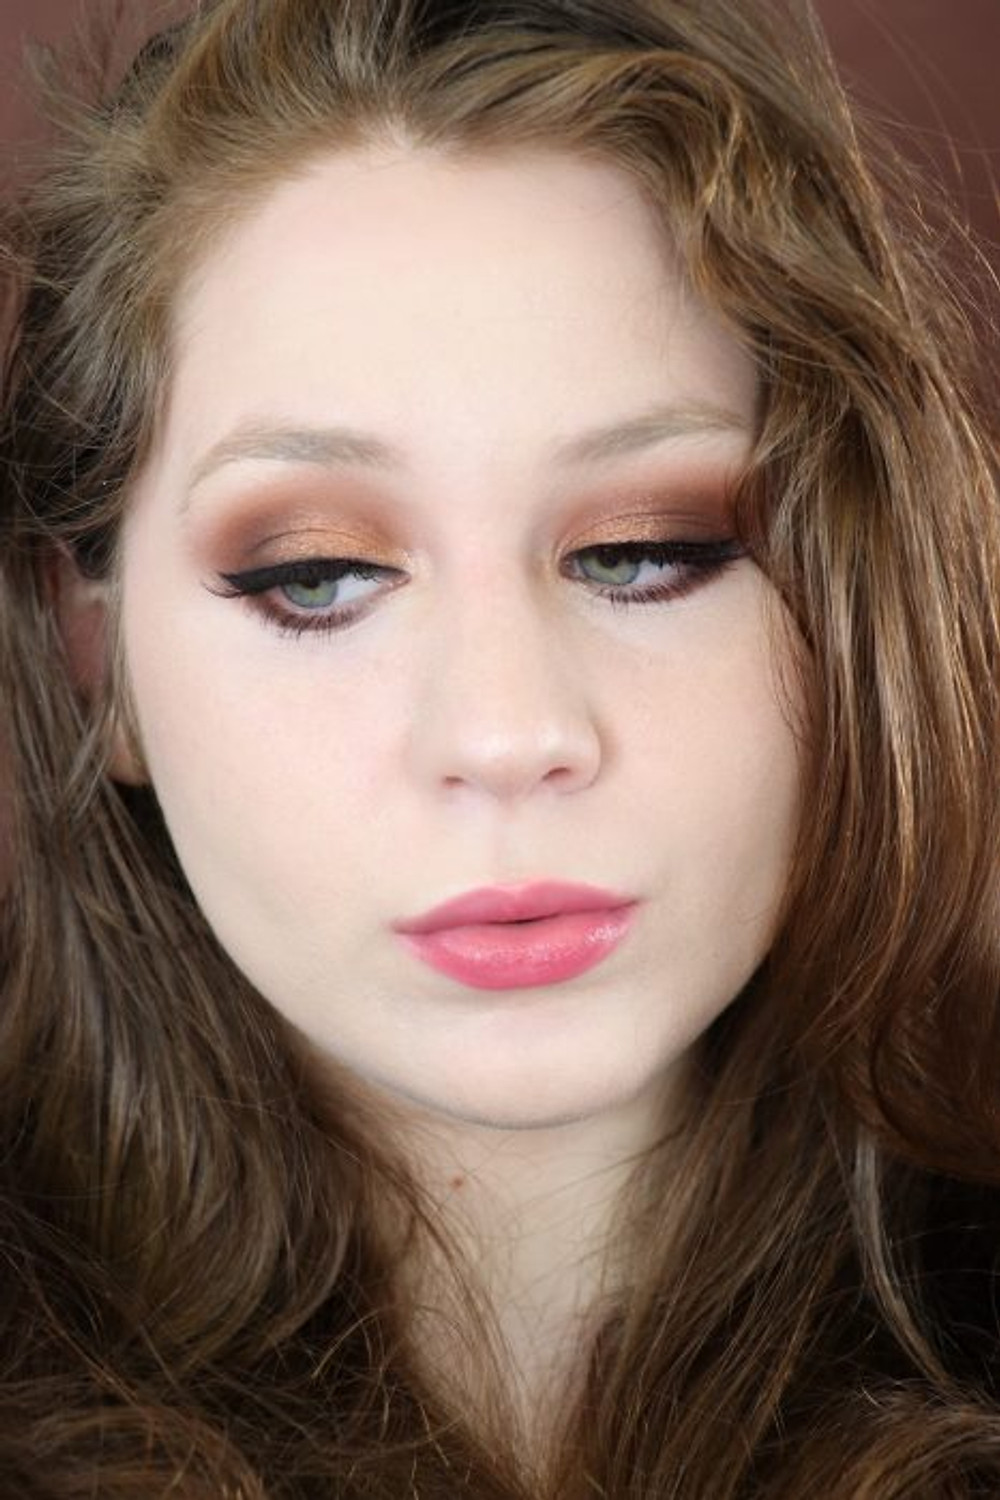 Too Faced The Natural Nudes Makeup Tutorial 2020 | Lillee Jean